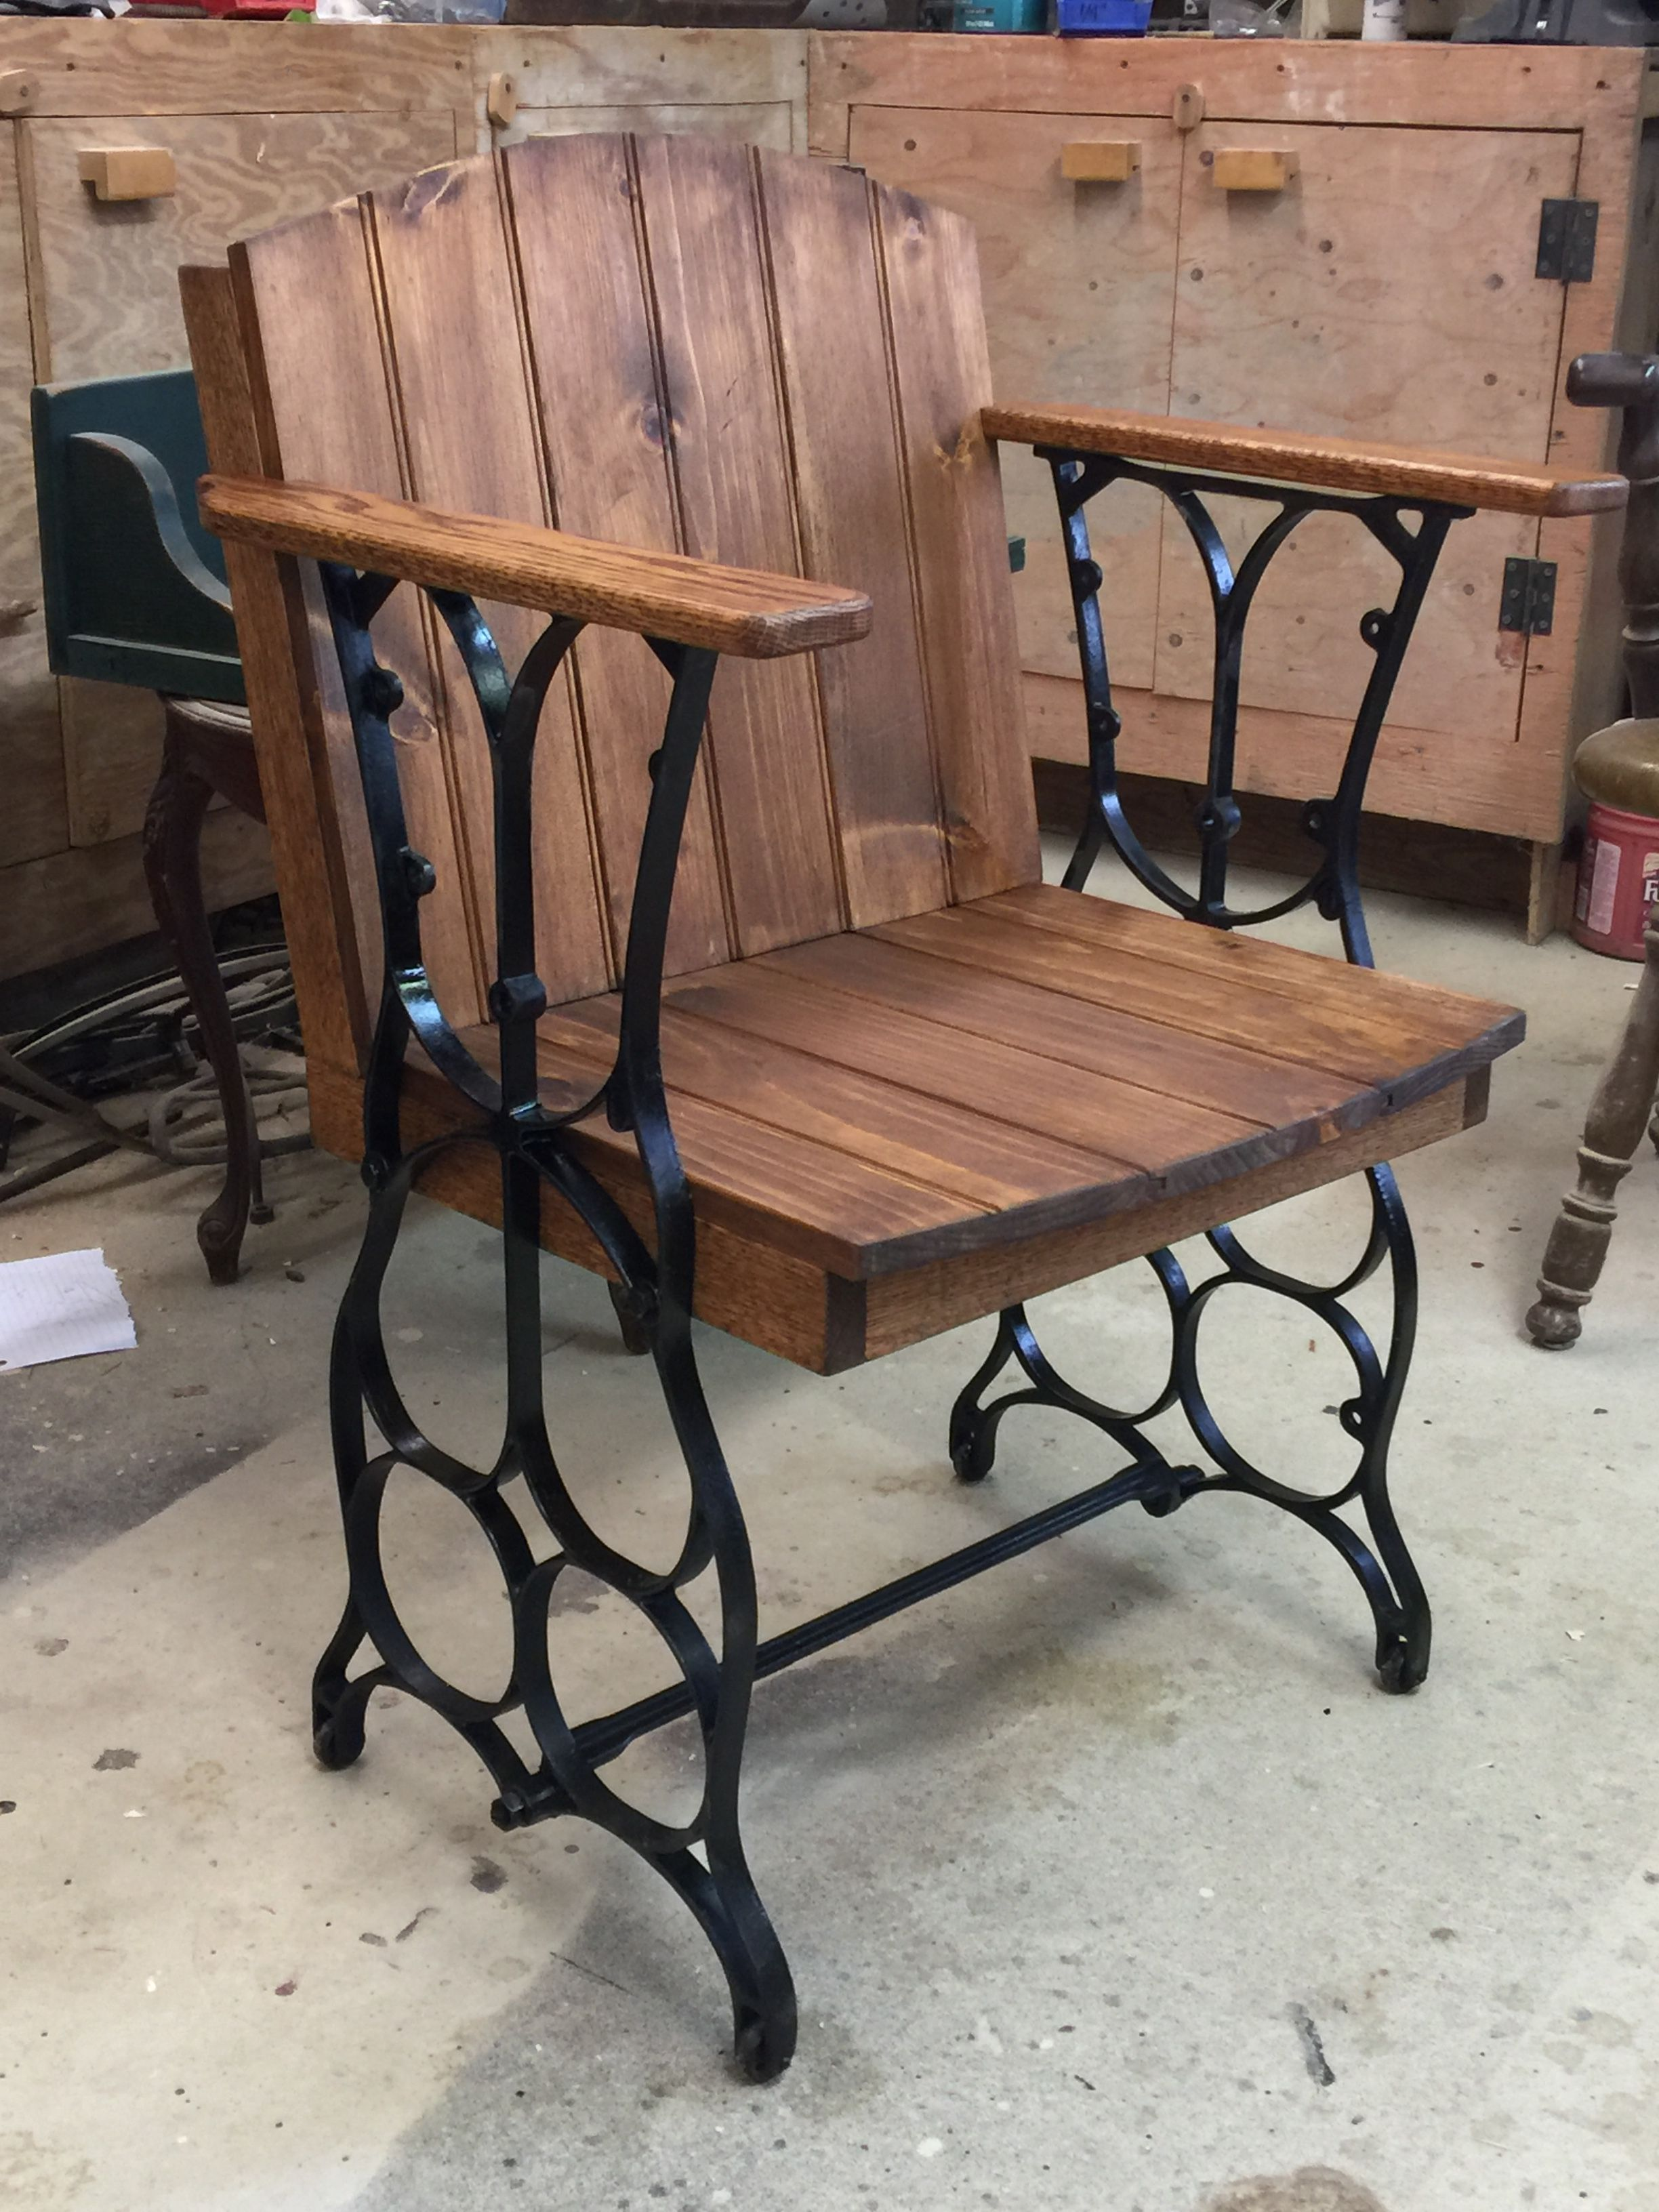 I made this chair from an old set of treadle sewing machine legs